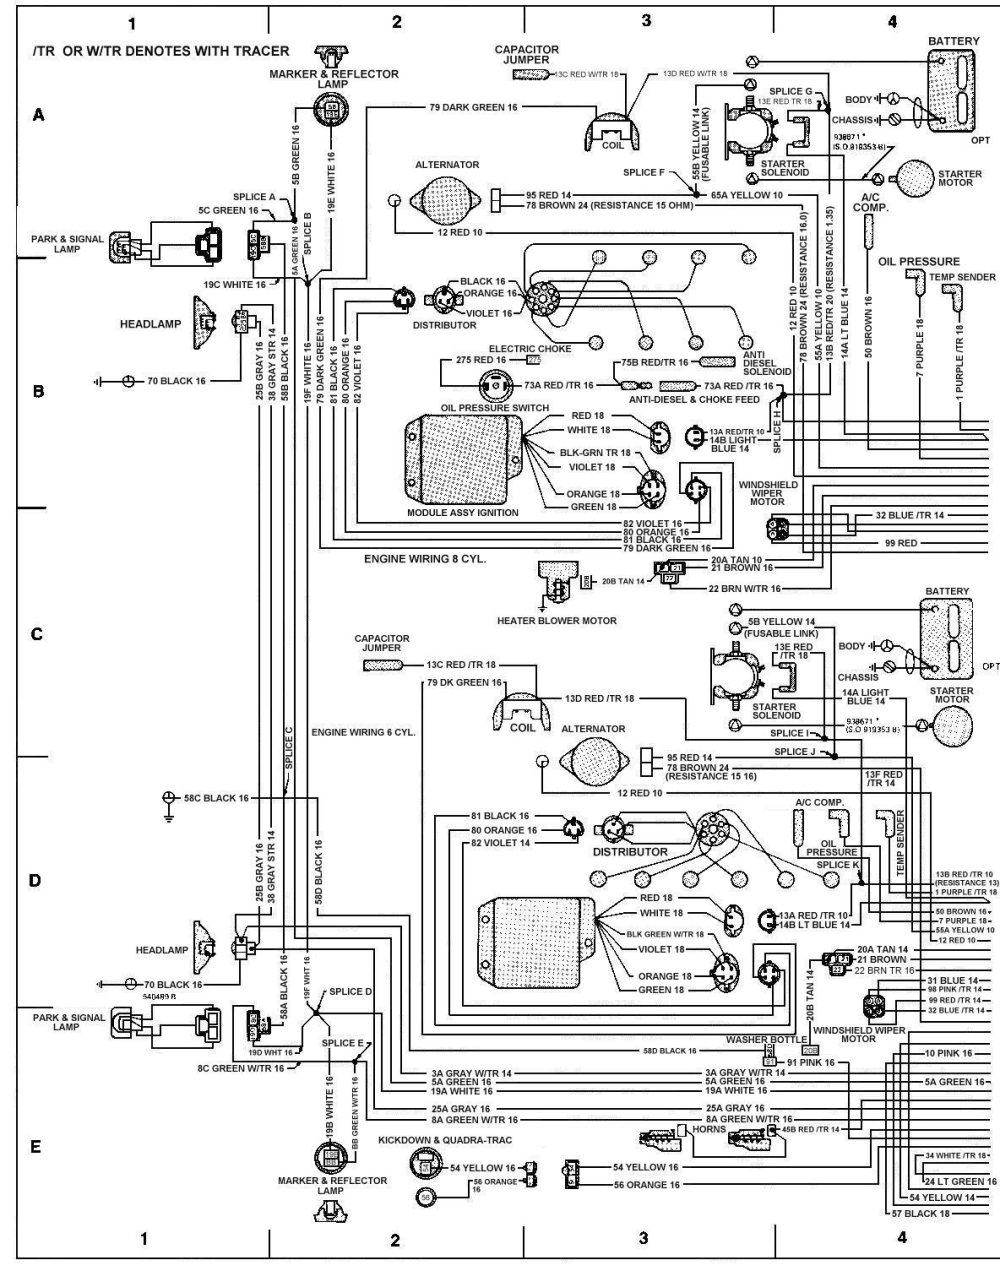 medium resolution of 79 jeep cj5 wiring diagram wiring diagram detailed 1975 jeep cj5 fuel wiring diagram 1975 jeep cj5 wiring diagram